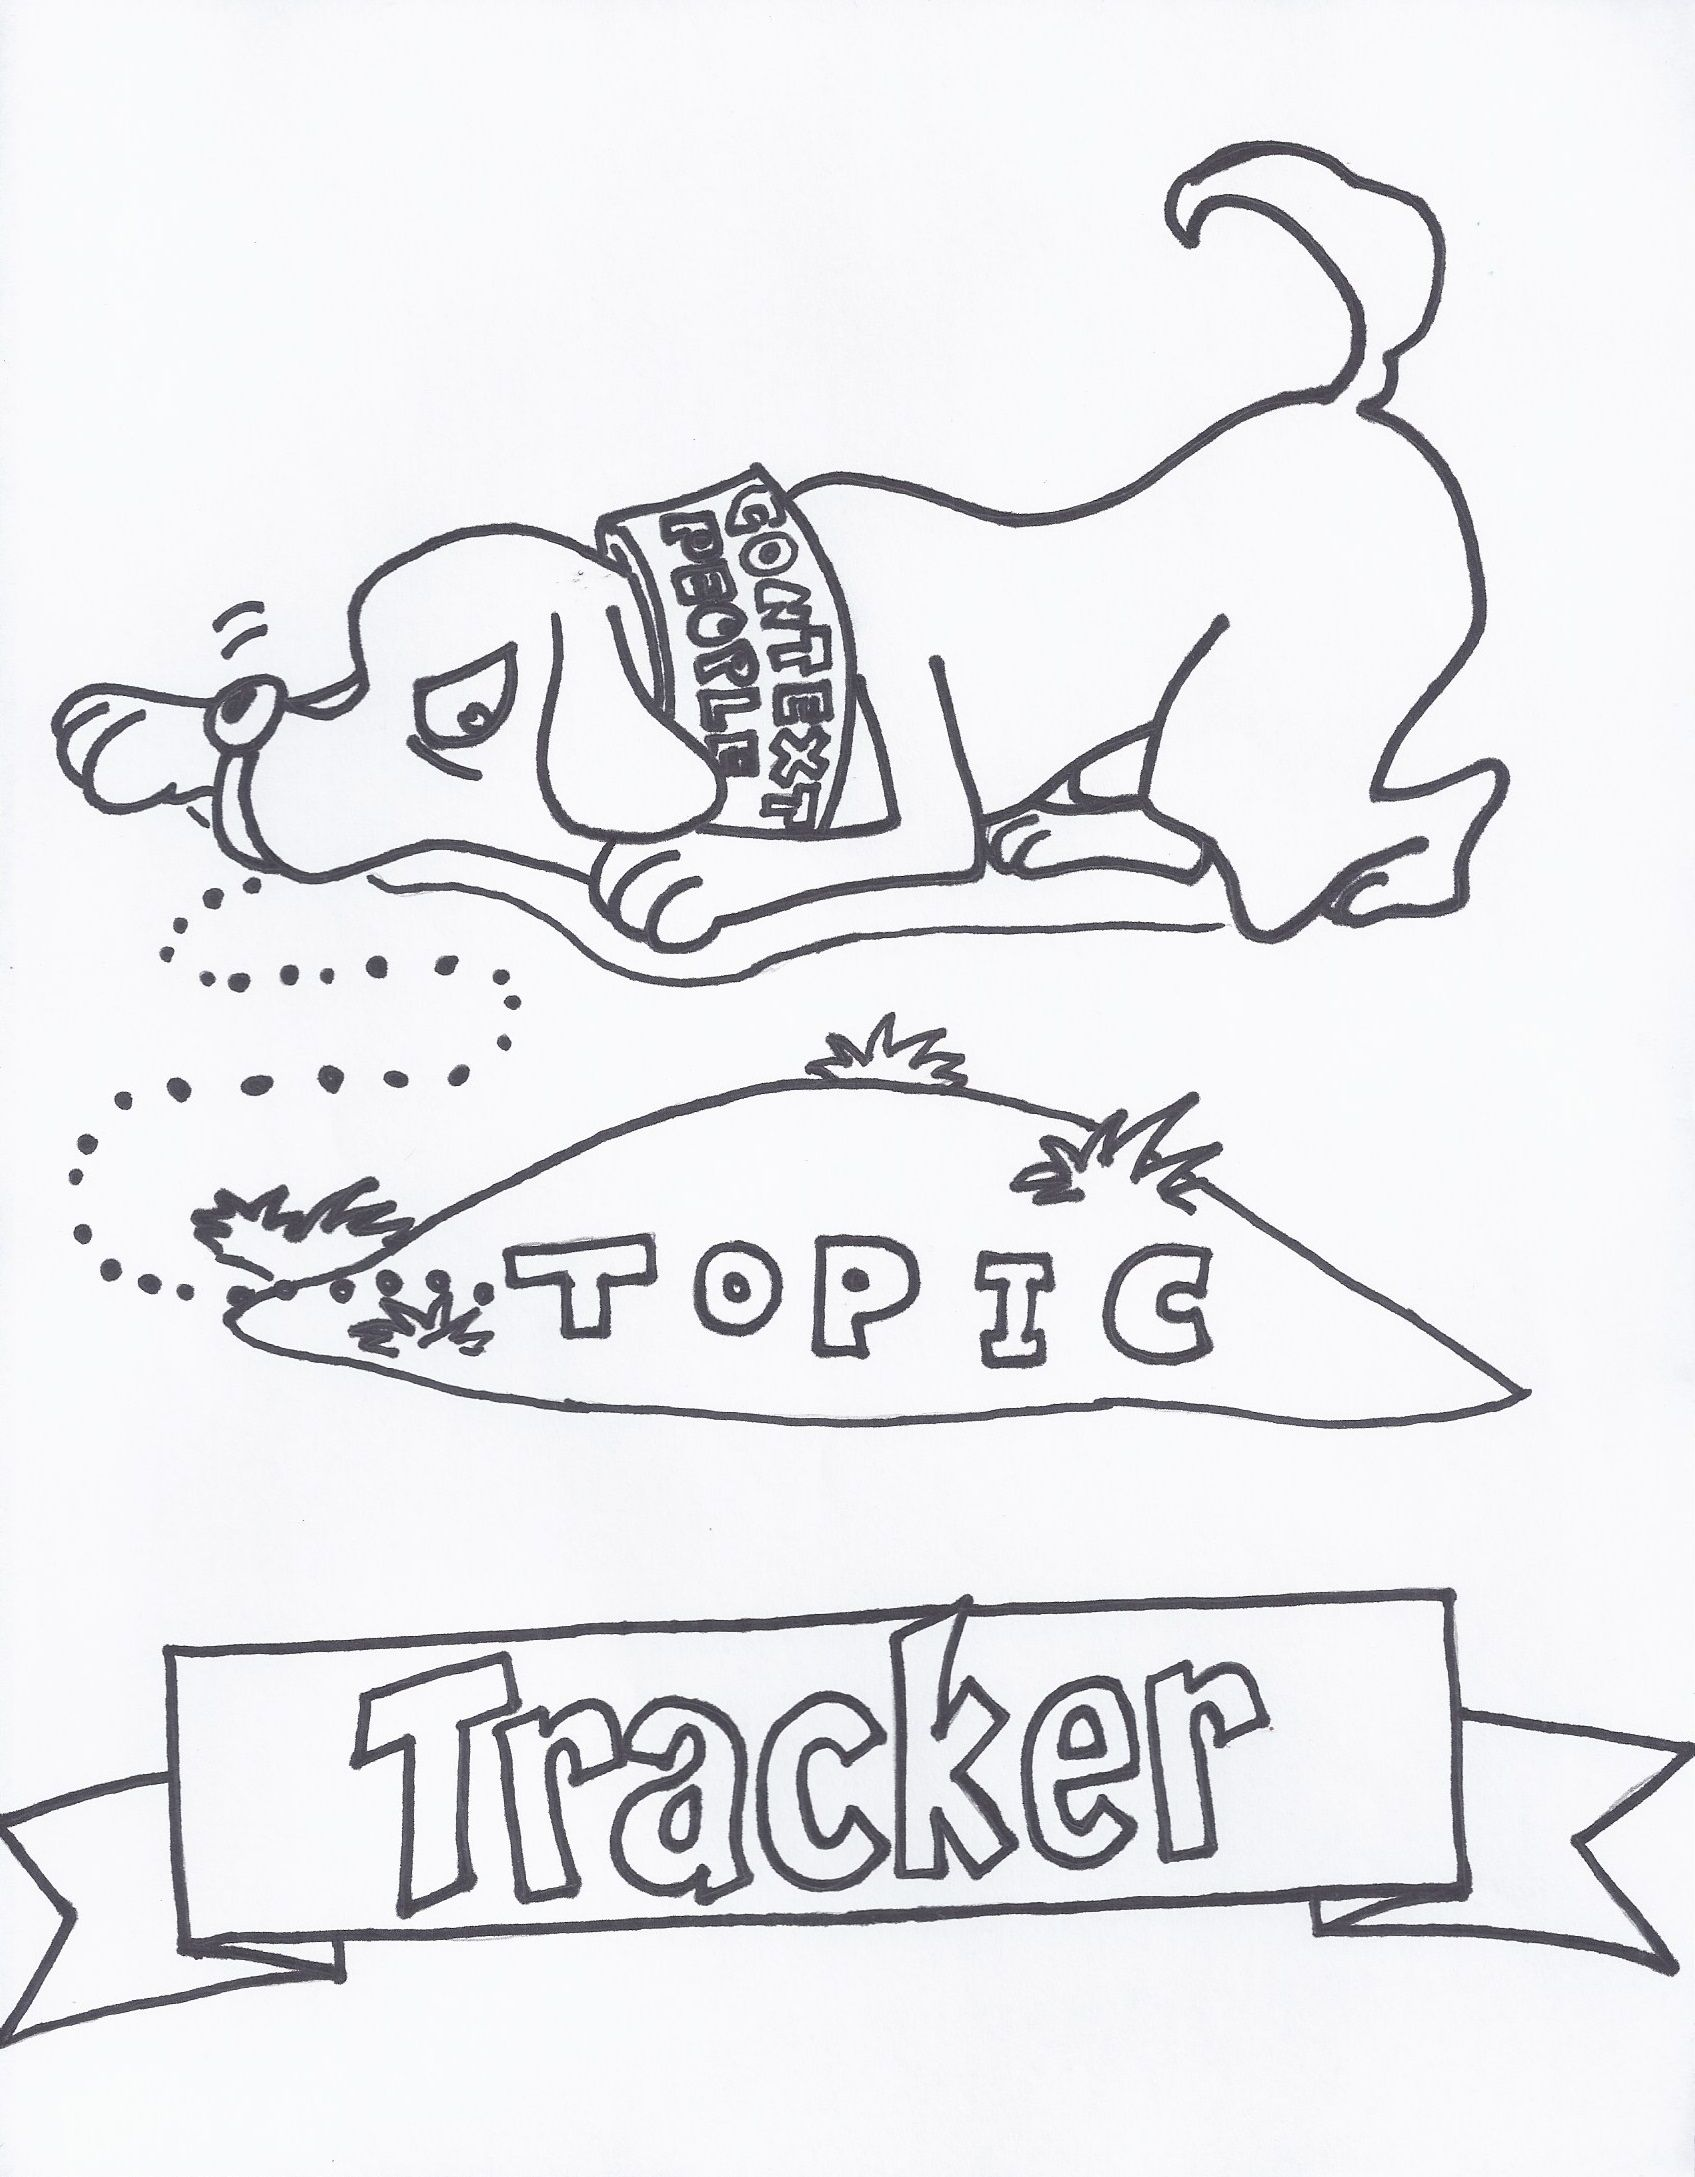 Topic Tracker: I help you stay on the right track or topic